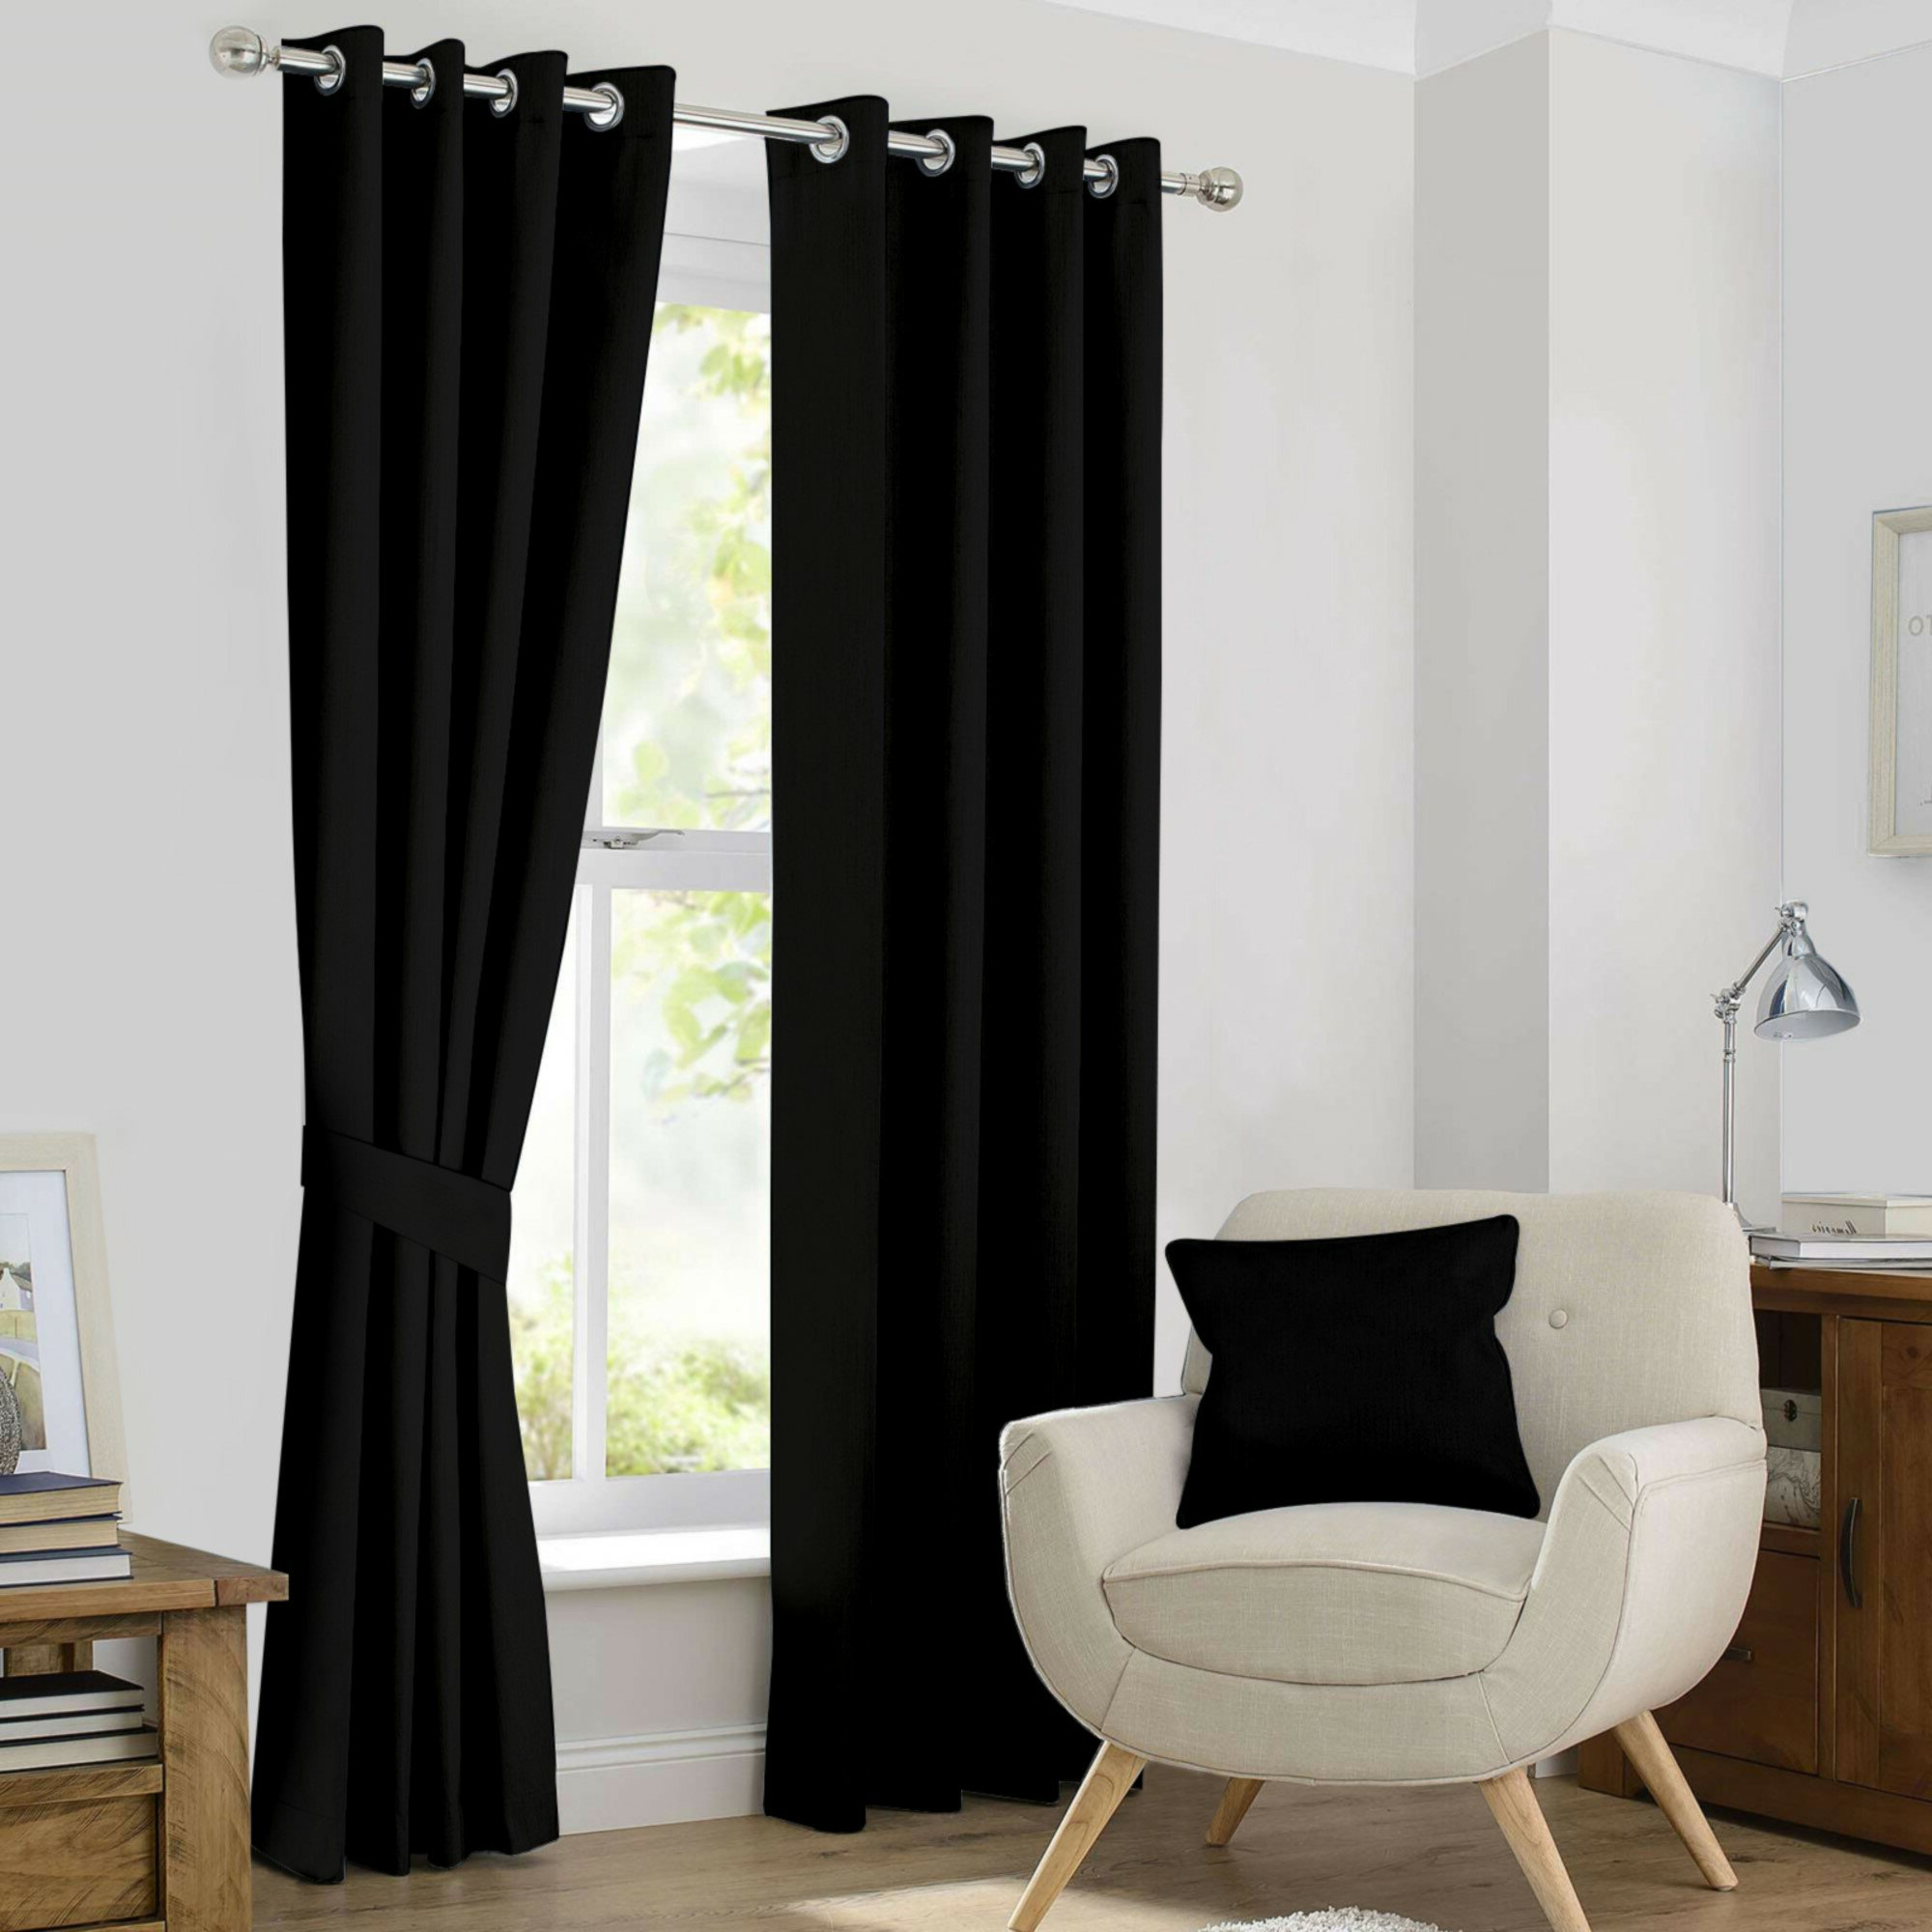 Classic Hotel Quality Water Resistant Fabric Curtains Set With Tiebacks With Regard To Most Recently Released Kaylee Solid Blackout Thermal Grommet Curtain Panels (View 12 of 20)